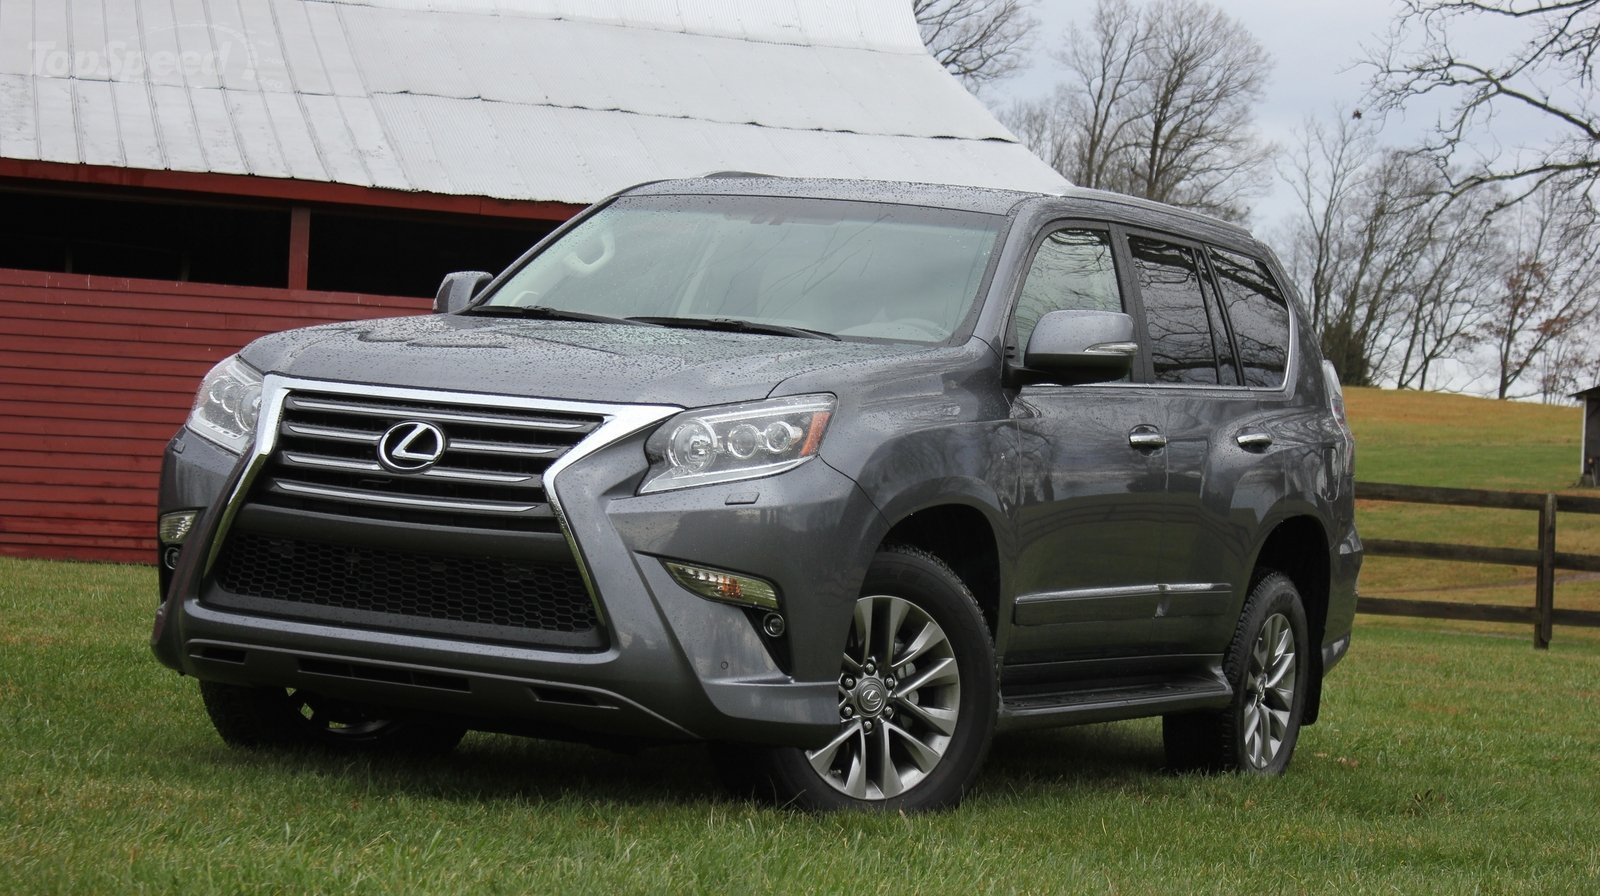 2015 lexus gx 460 driven review top speed. Black Bedroom Furniture Sets. Home Design Ideas